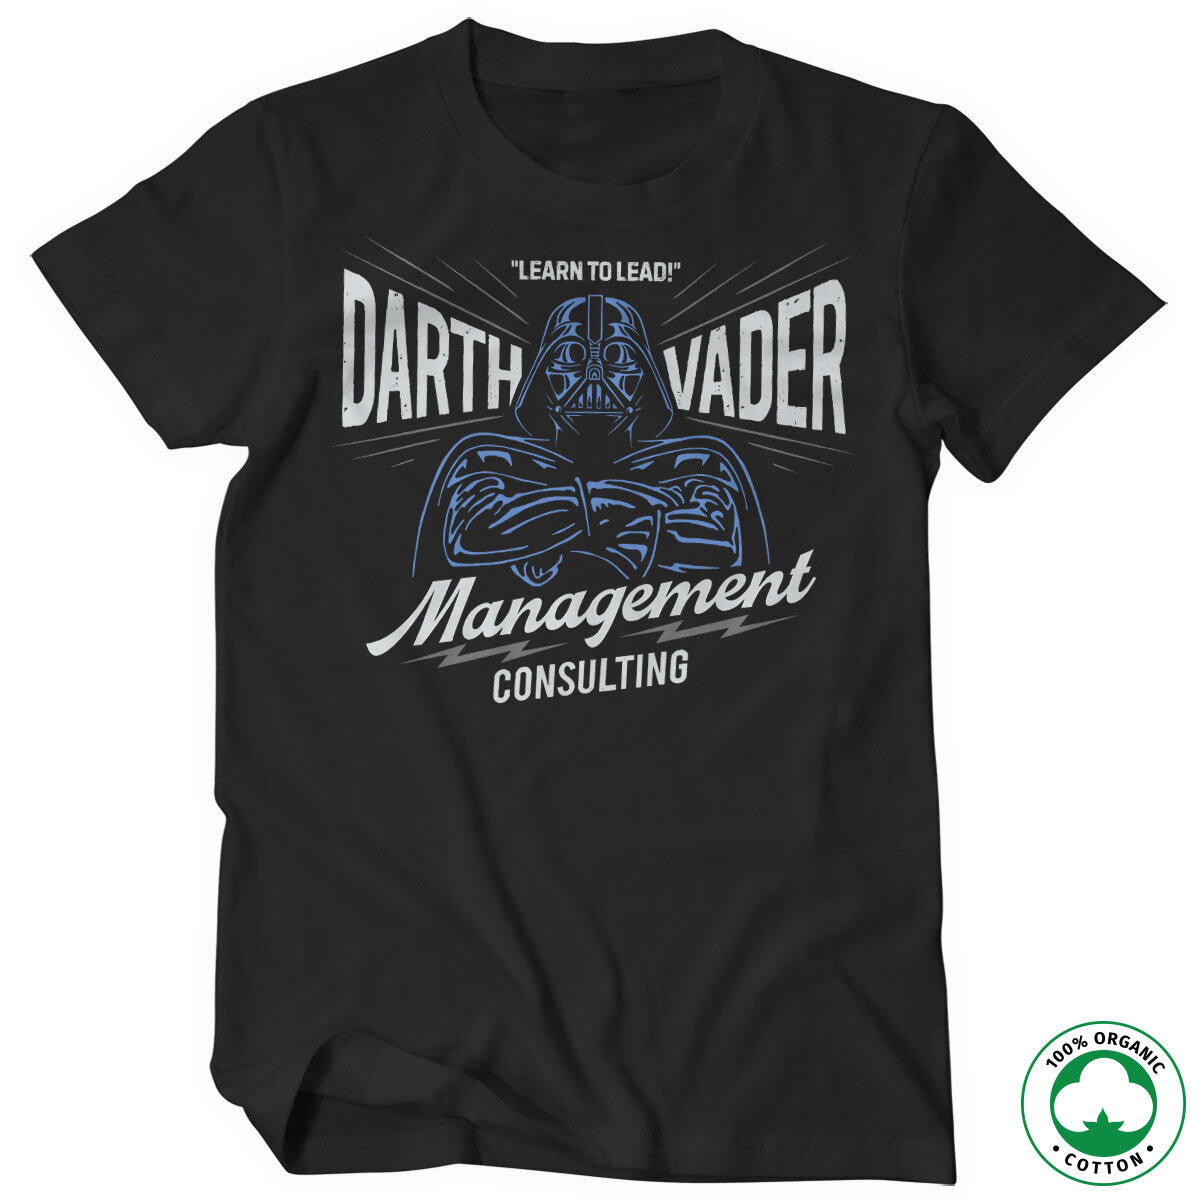 Darth Vader Management Consulting Organic Tee